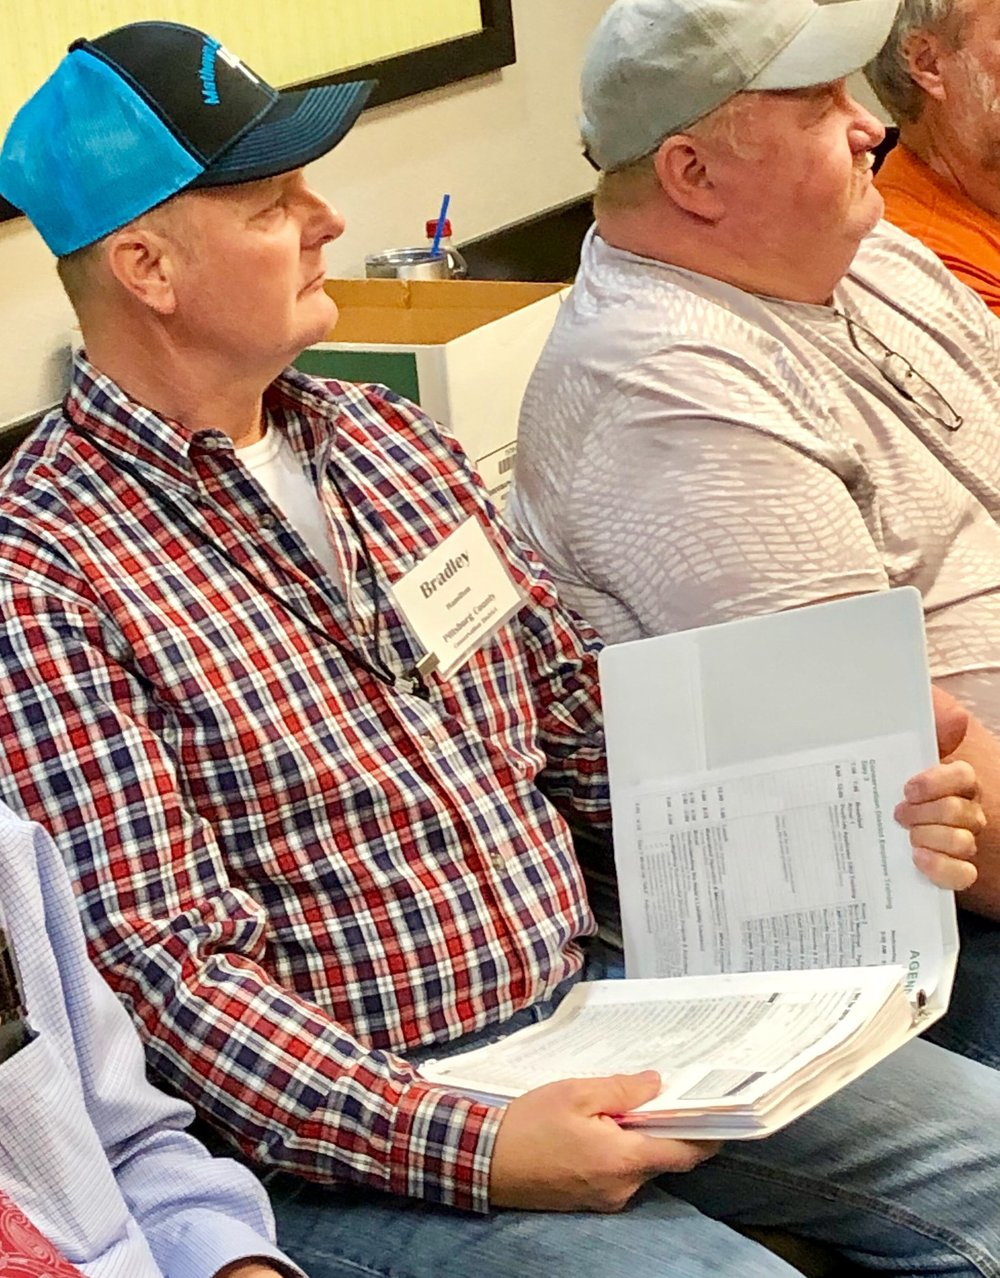 Bradley Hamilton leads the Pittsburgh County Conservation District in southeastern Oklahoma.